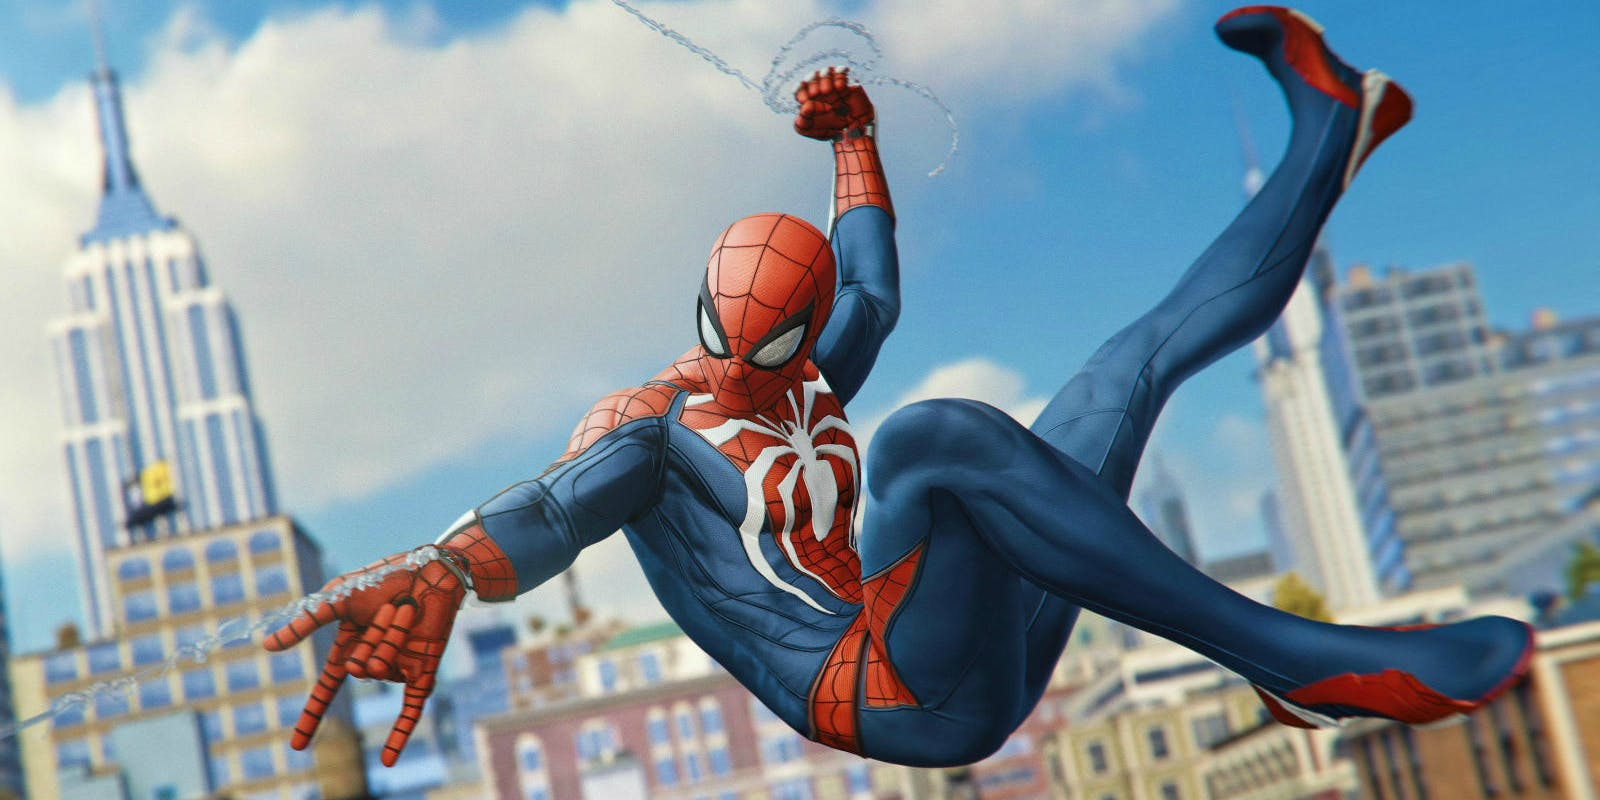 Advanced Suit (Earth-1048) from Marvel's Spider-Man (video game) 0002.jpg